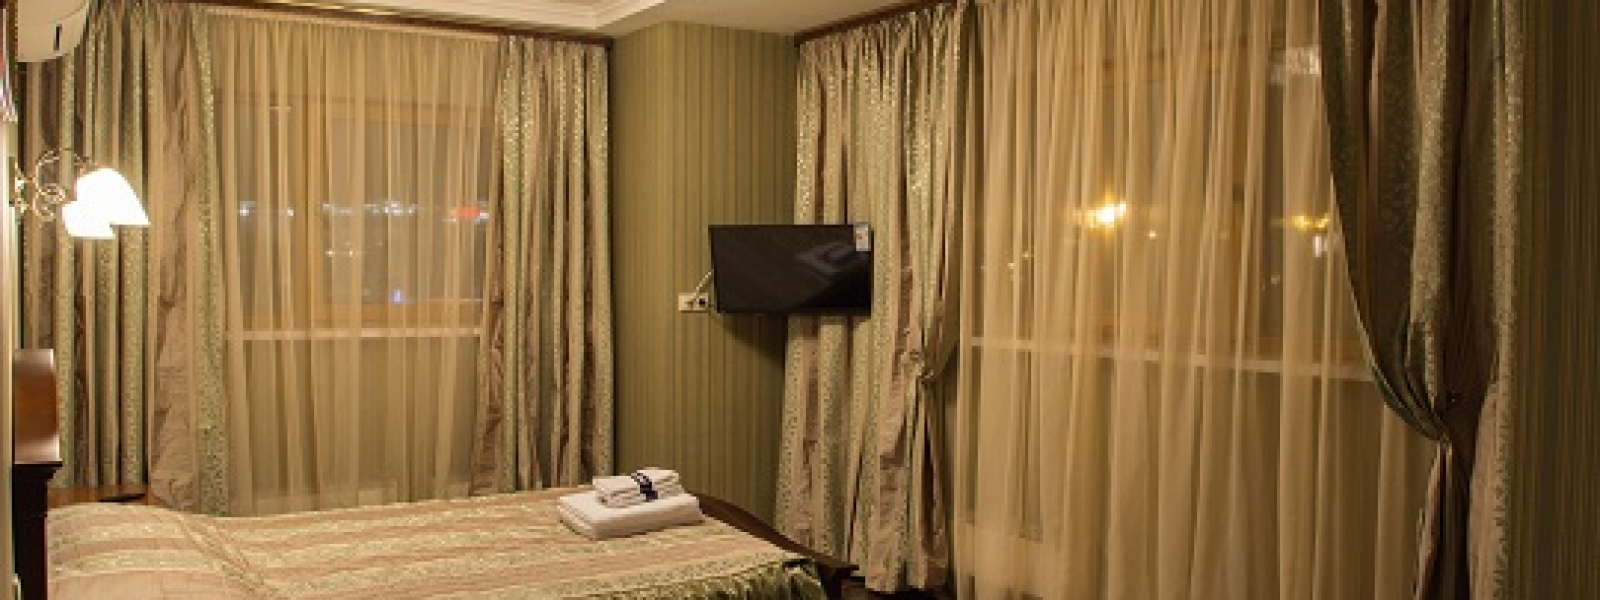 The most comfortable rooms are waiting for you!